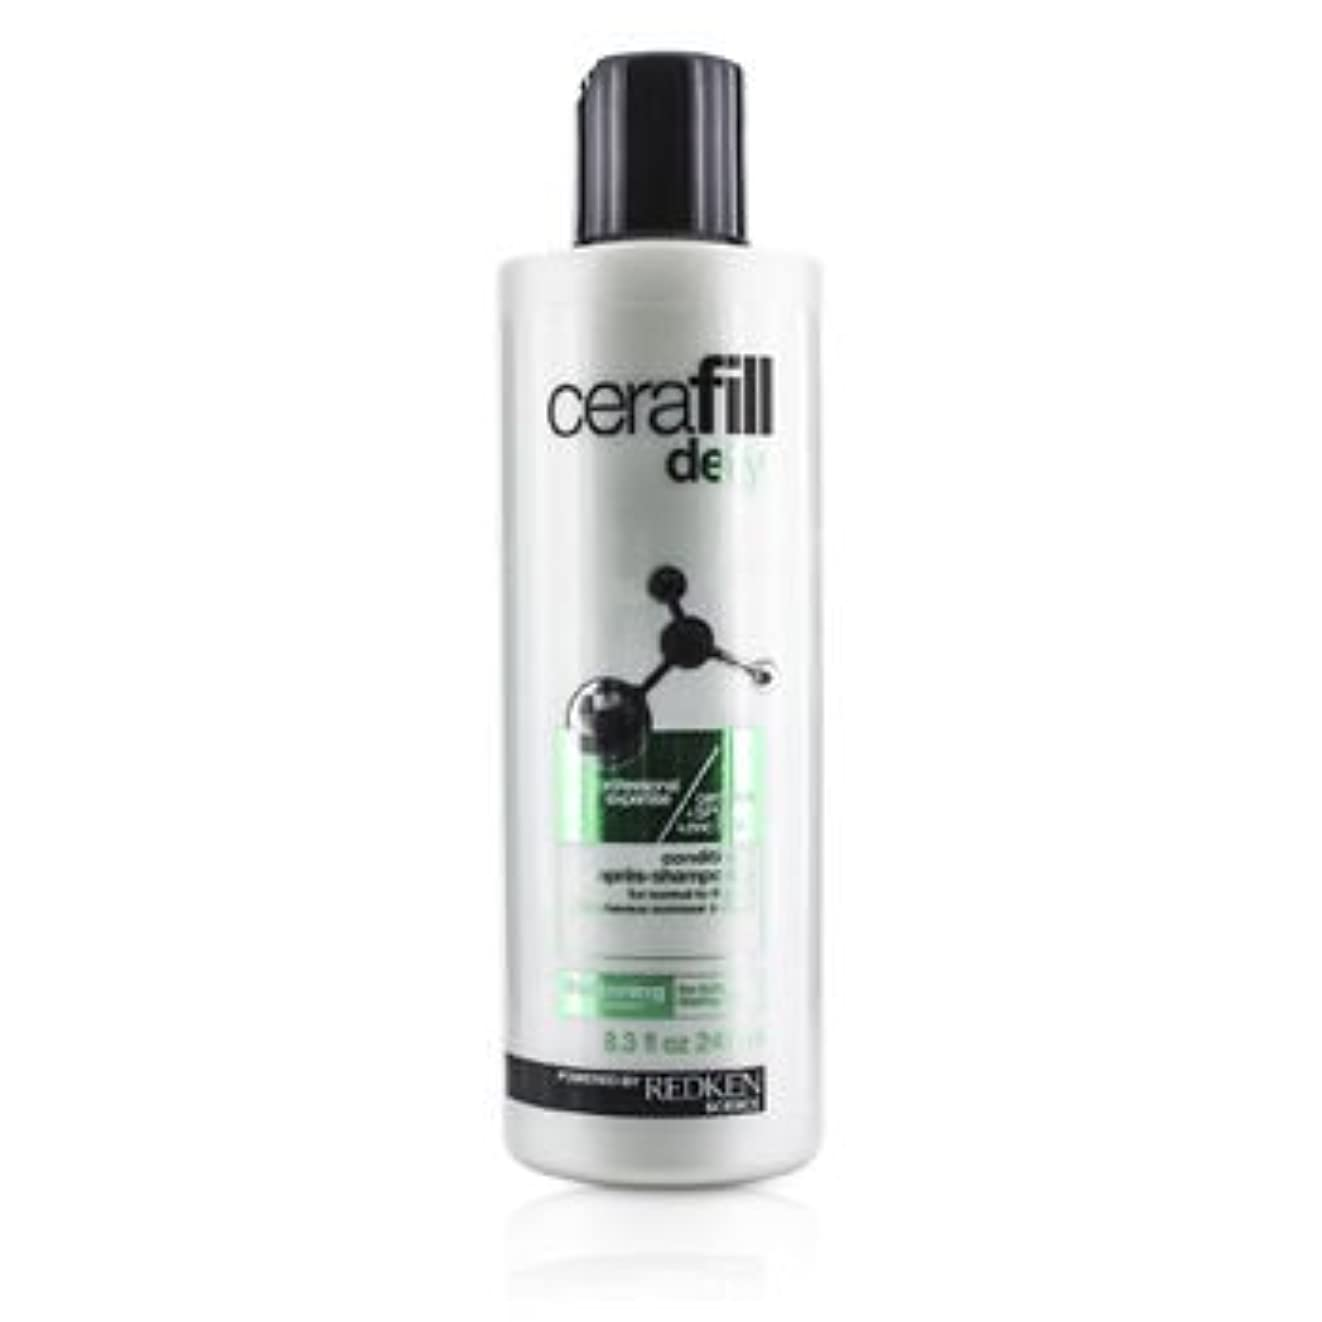 神学校稼ぐ文句を言う[Redken] Cerafill Defy Thickening Conditioner (For Normal to Thin Hair) 245ml/8.3oz